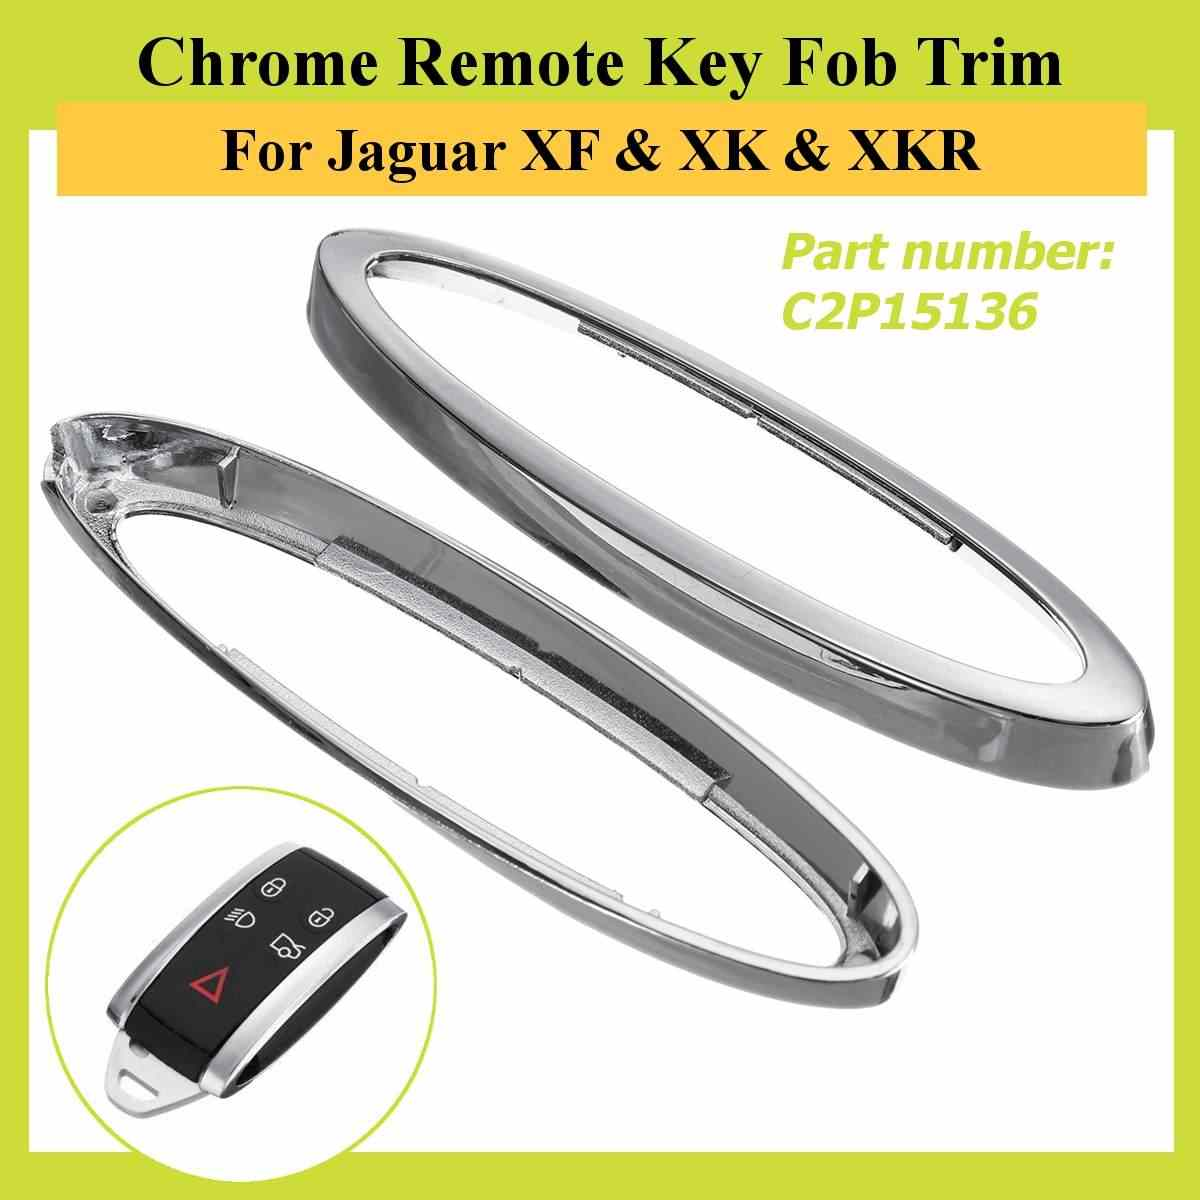 # C2P15136 Chrome Remote Key Fob Trim Kit สำหรับ Jaguar XF & XK & XKR